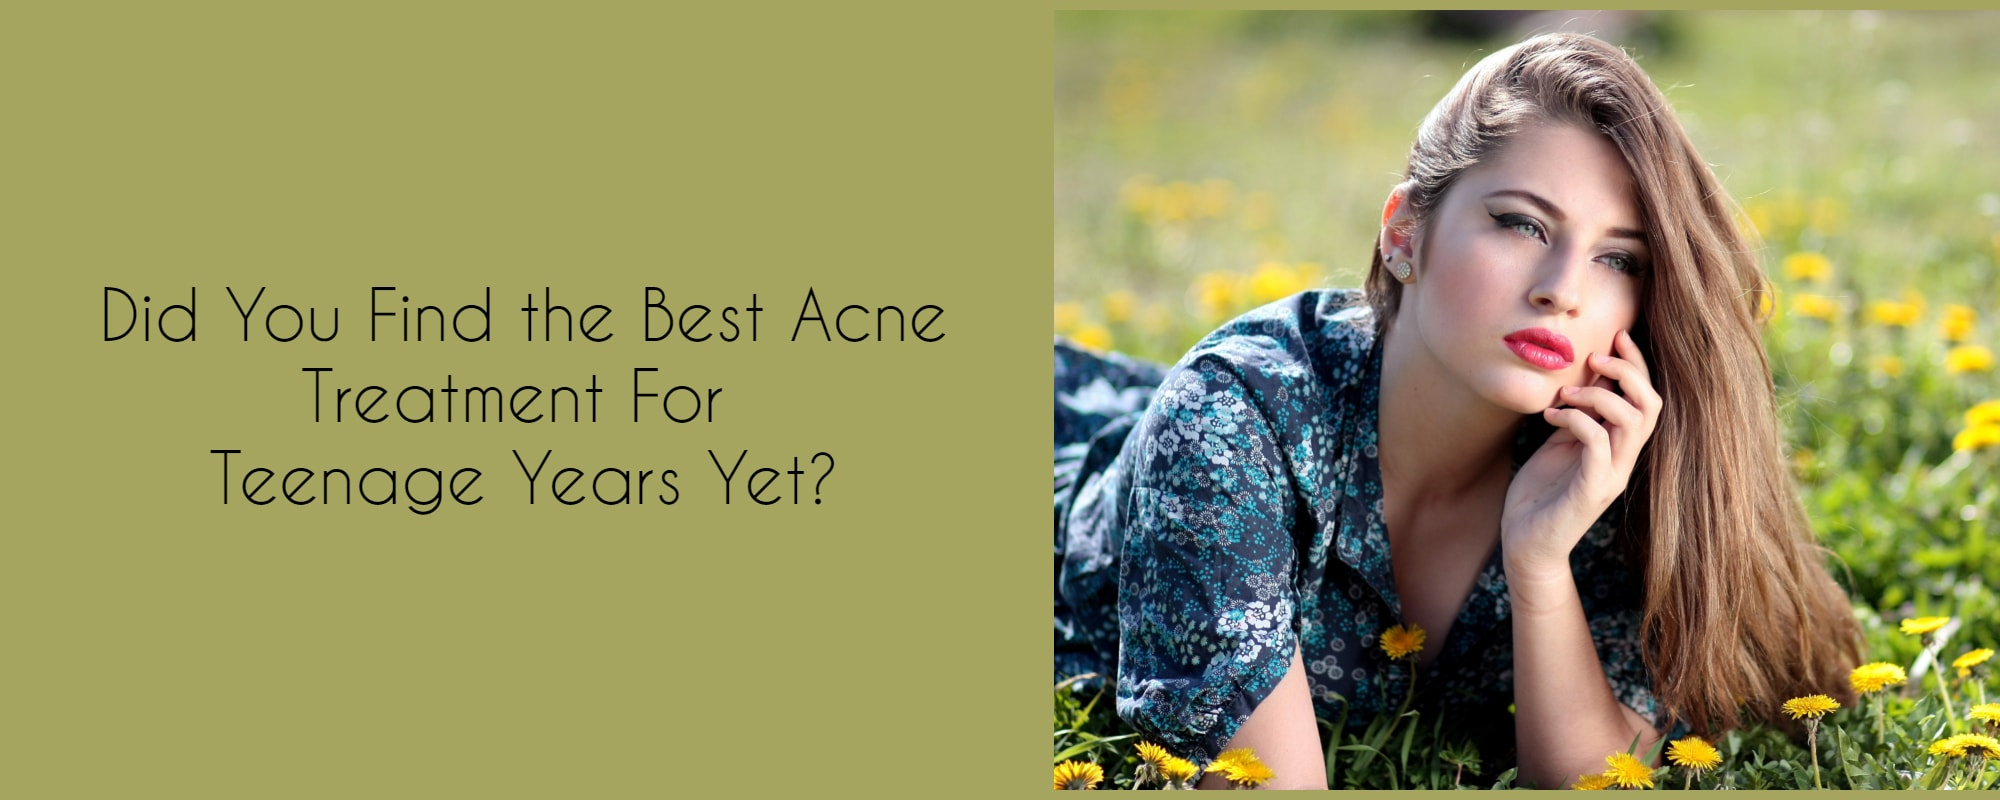 acne removal treatment for teenagers in Melbourne